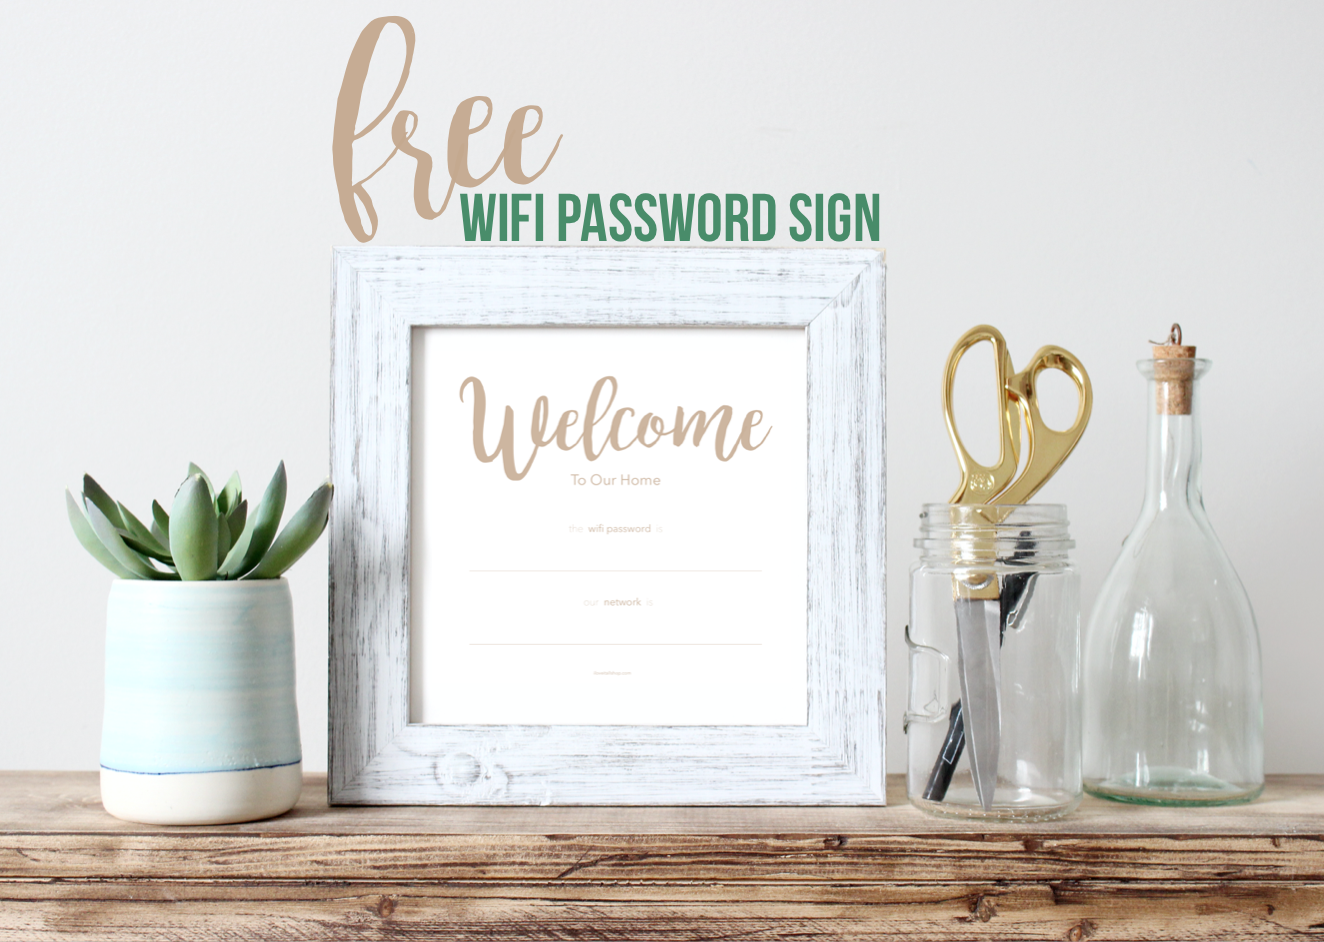 #free #wifi #wifi password #password #password sign #wifi password sign #poster #printable #download